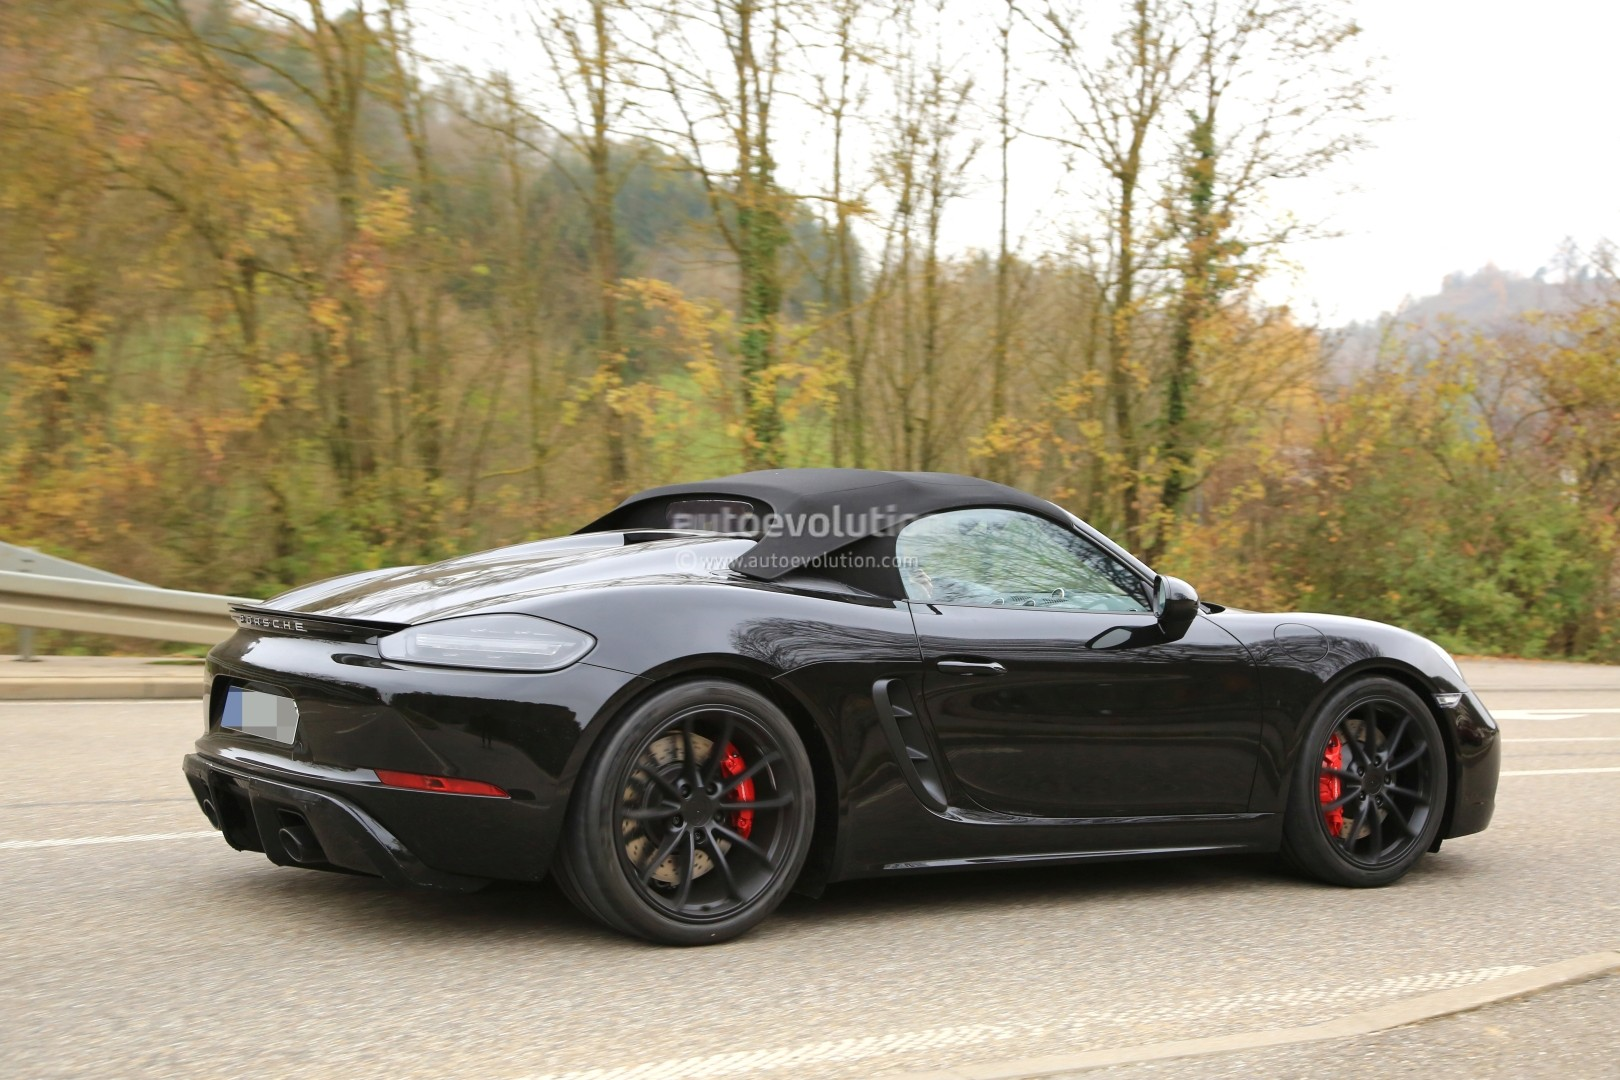 2019 Porsche 718 Boxster Spyder Makes Spyshot Debut With